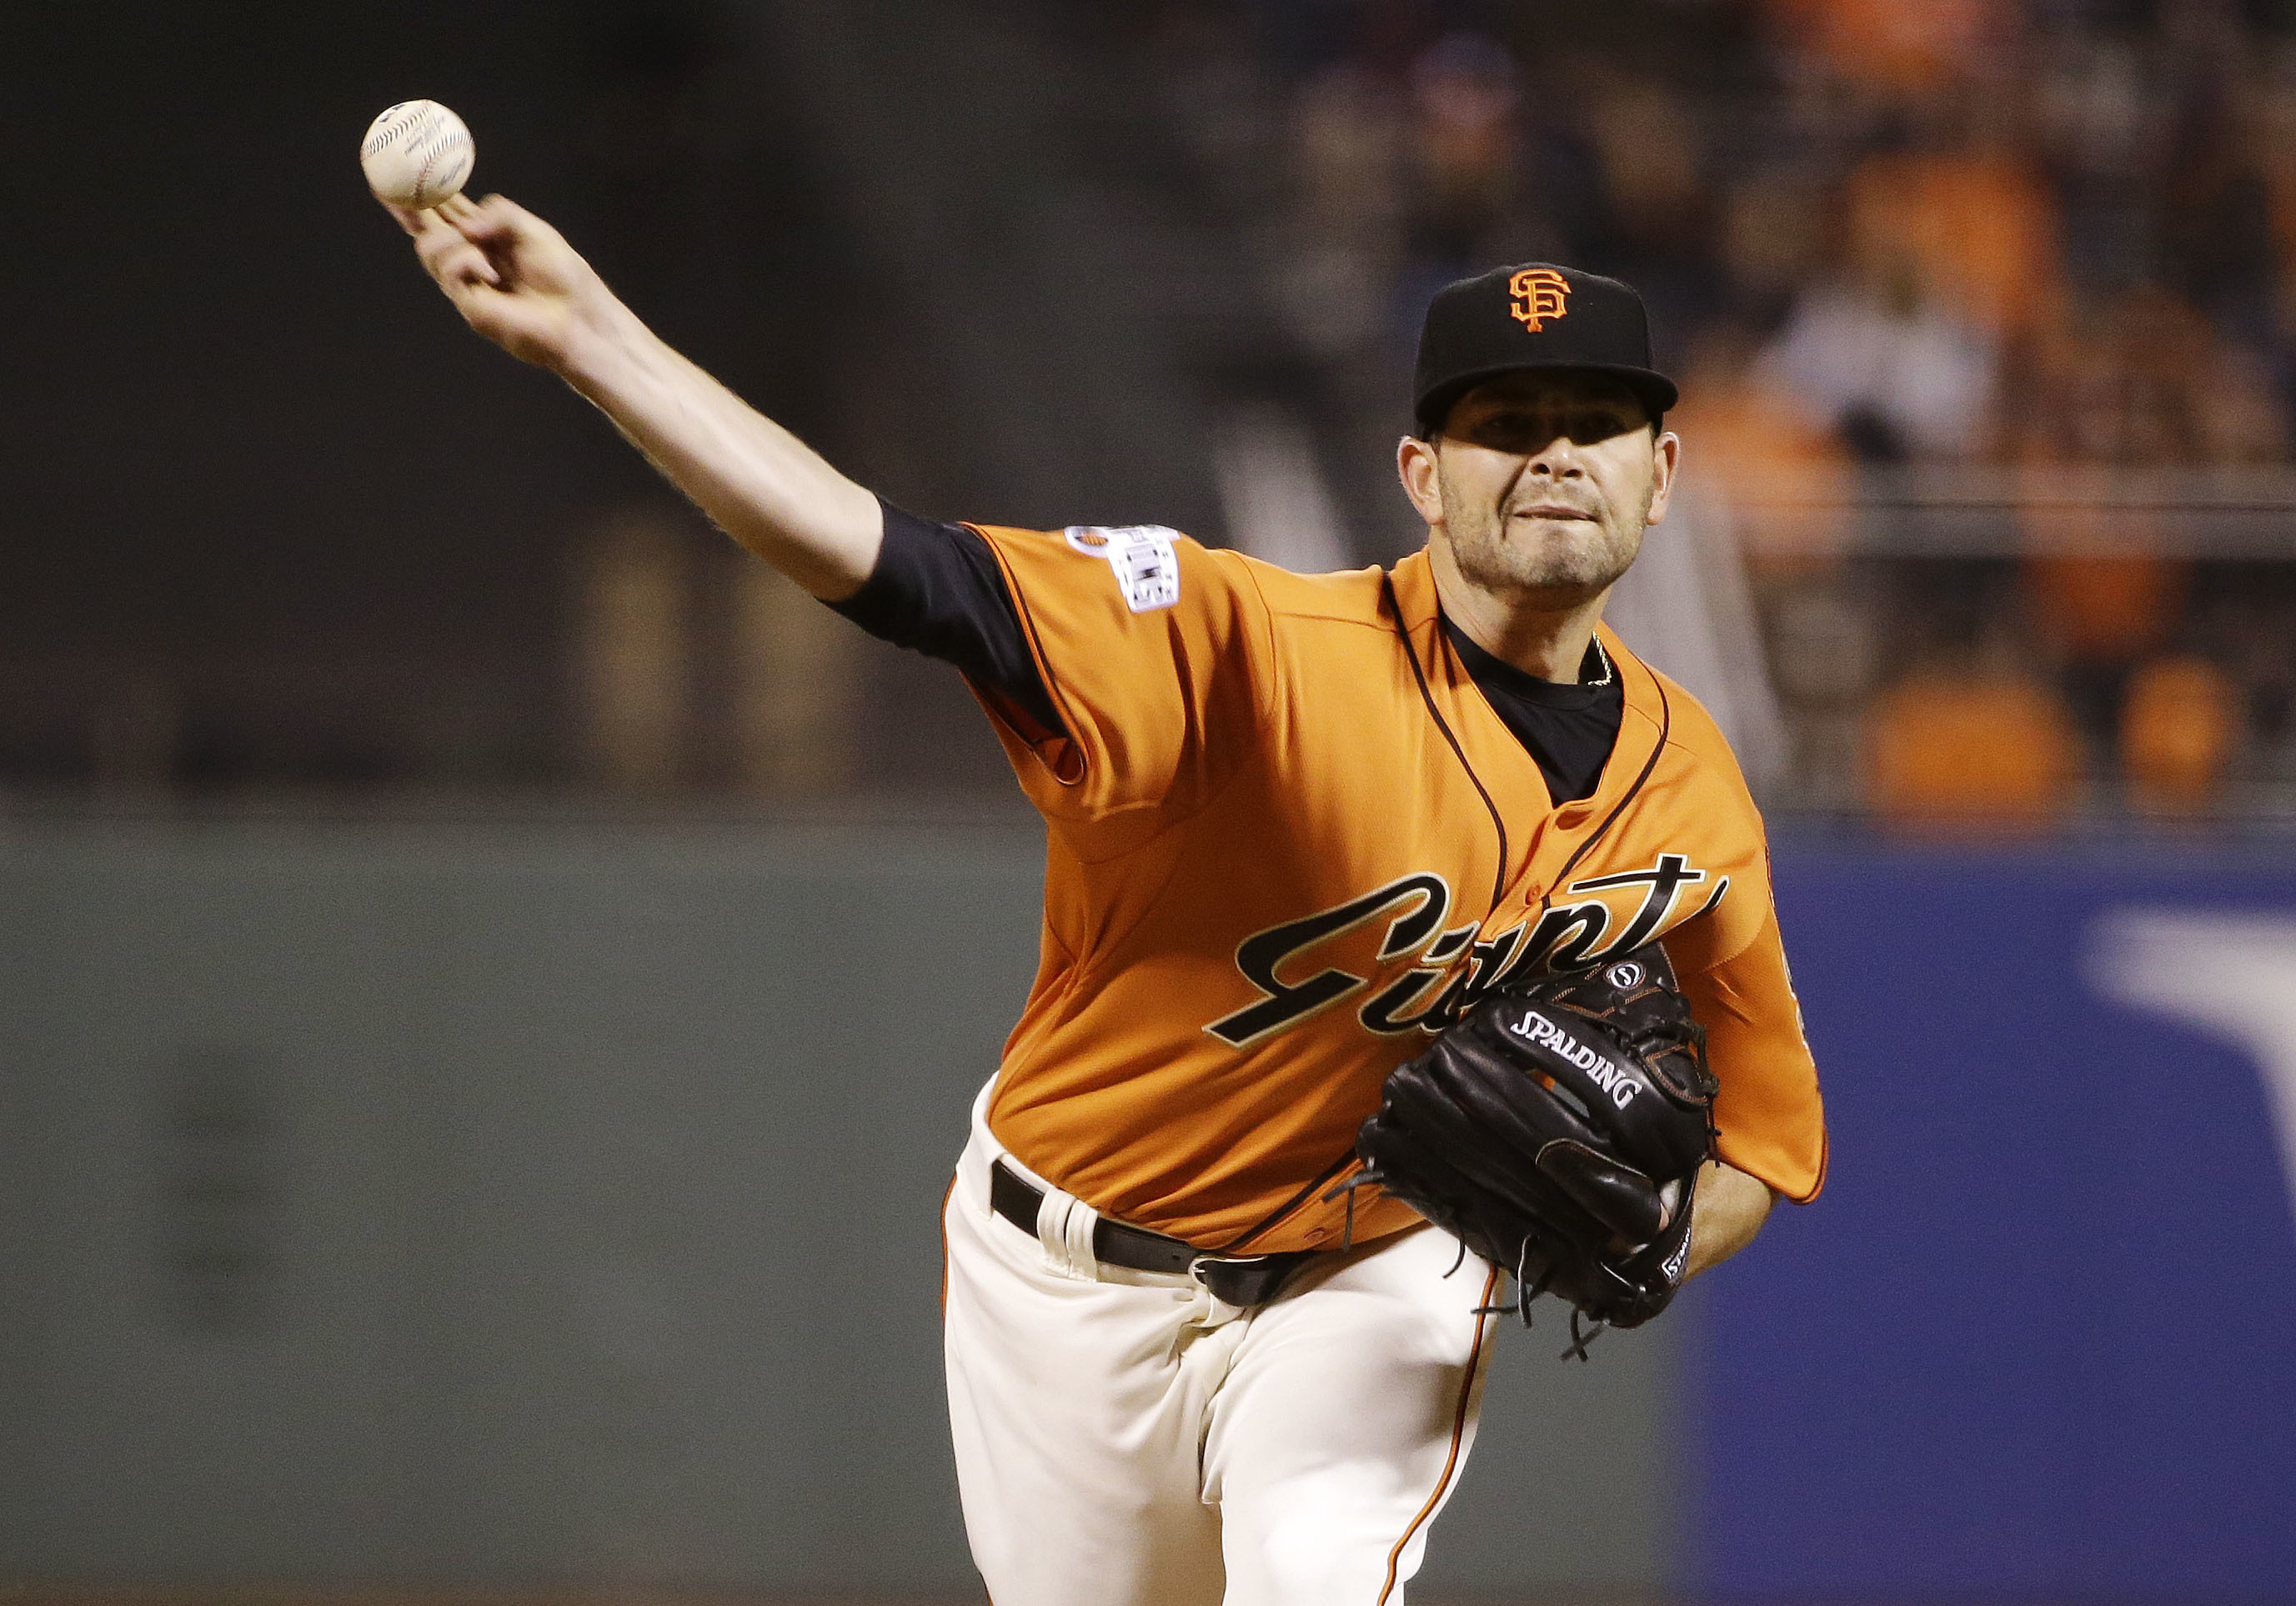 3259a412ff1 SAN FRANCISCO (AP) — The San Francisco Giants have agreed to trade  right-hander Chris Heston to the Seattle Mariners for a player to be named